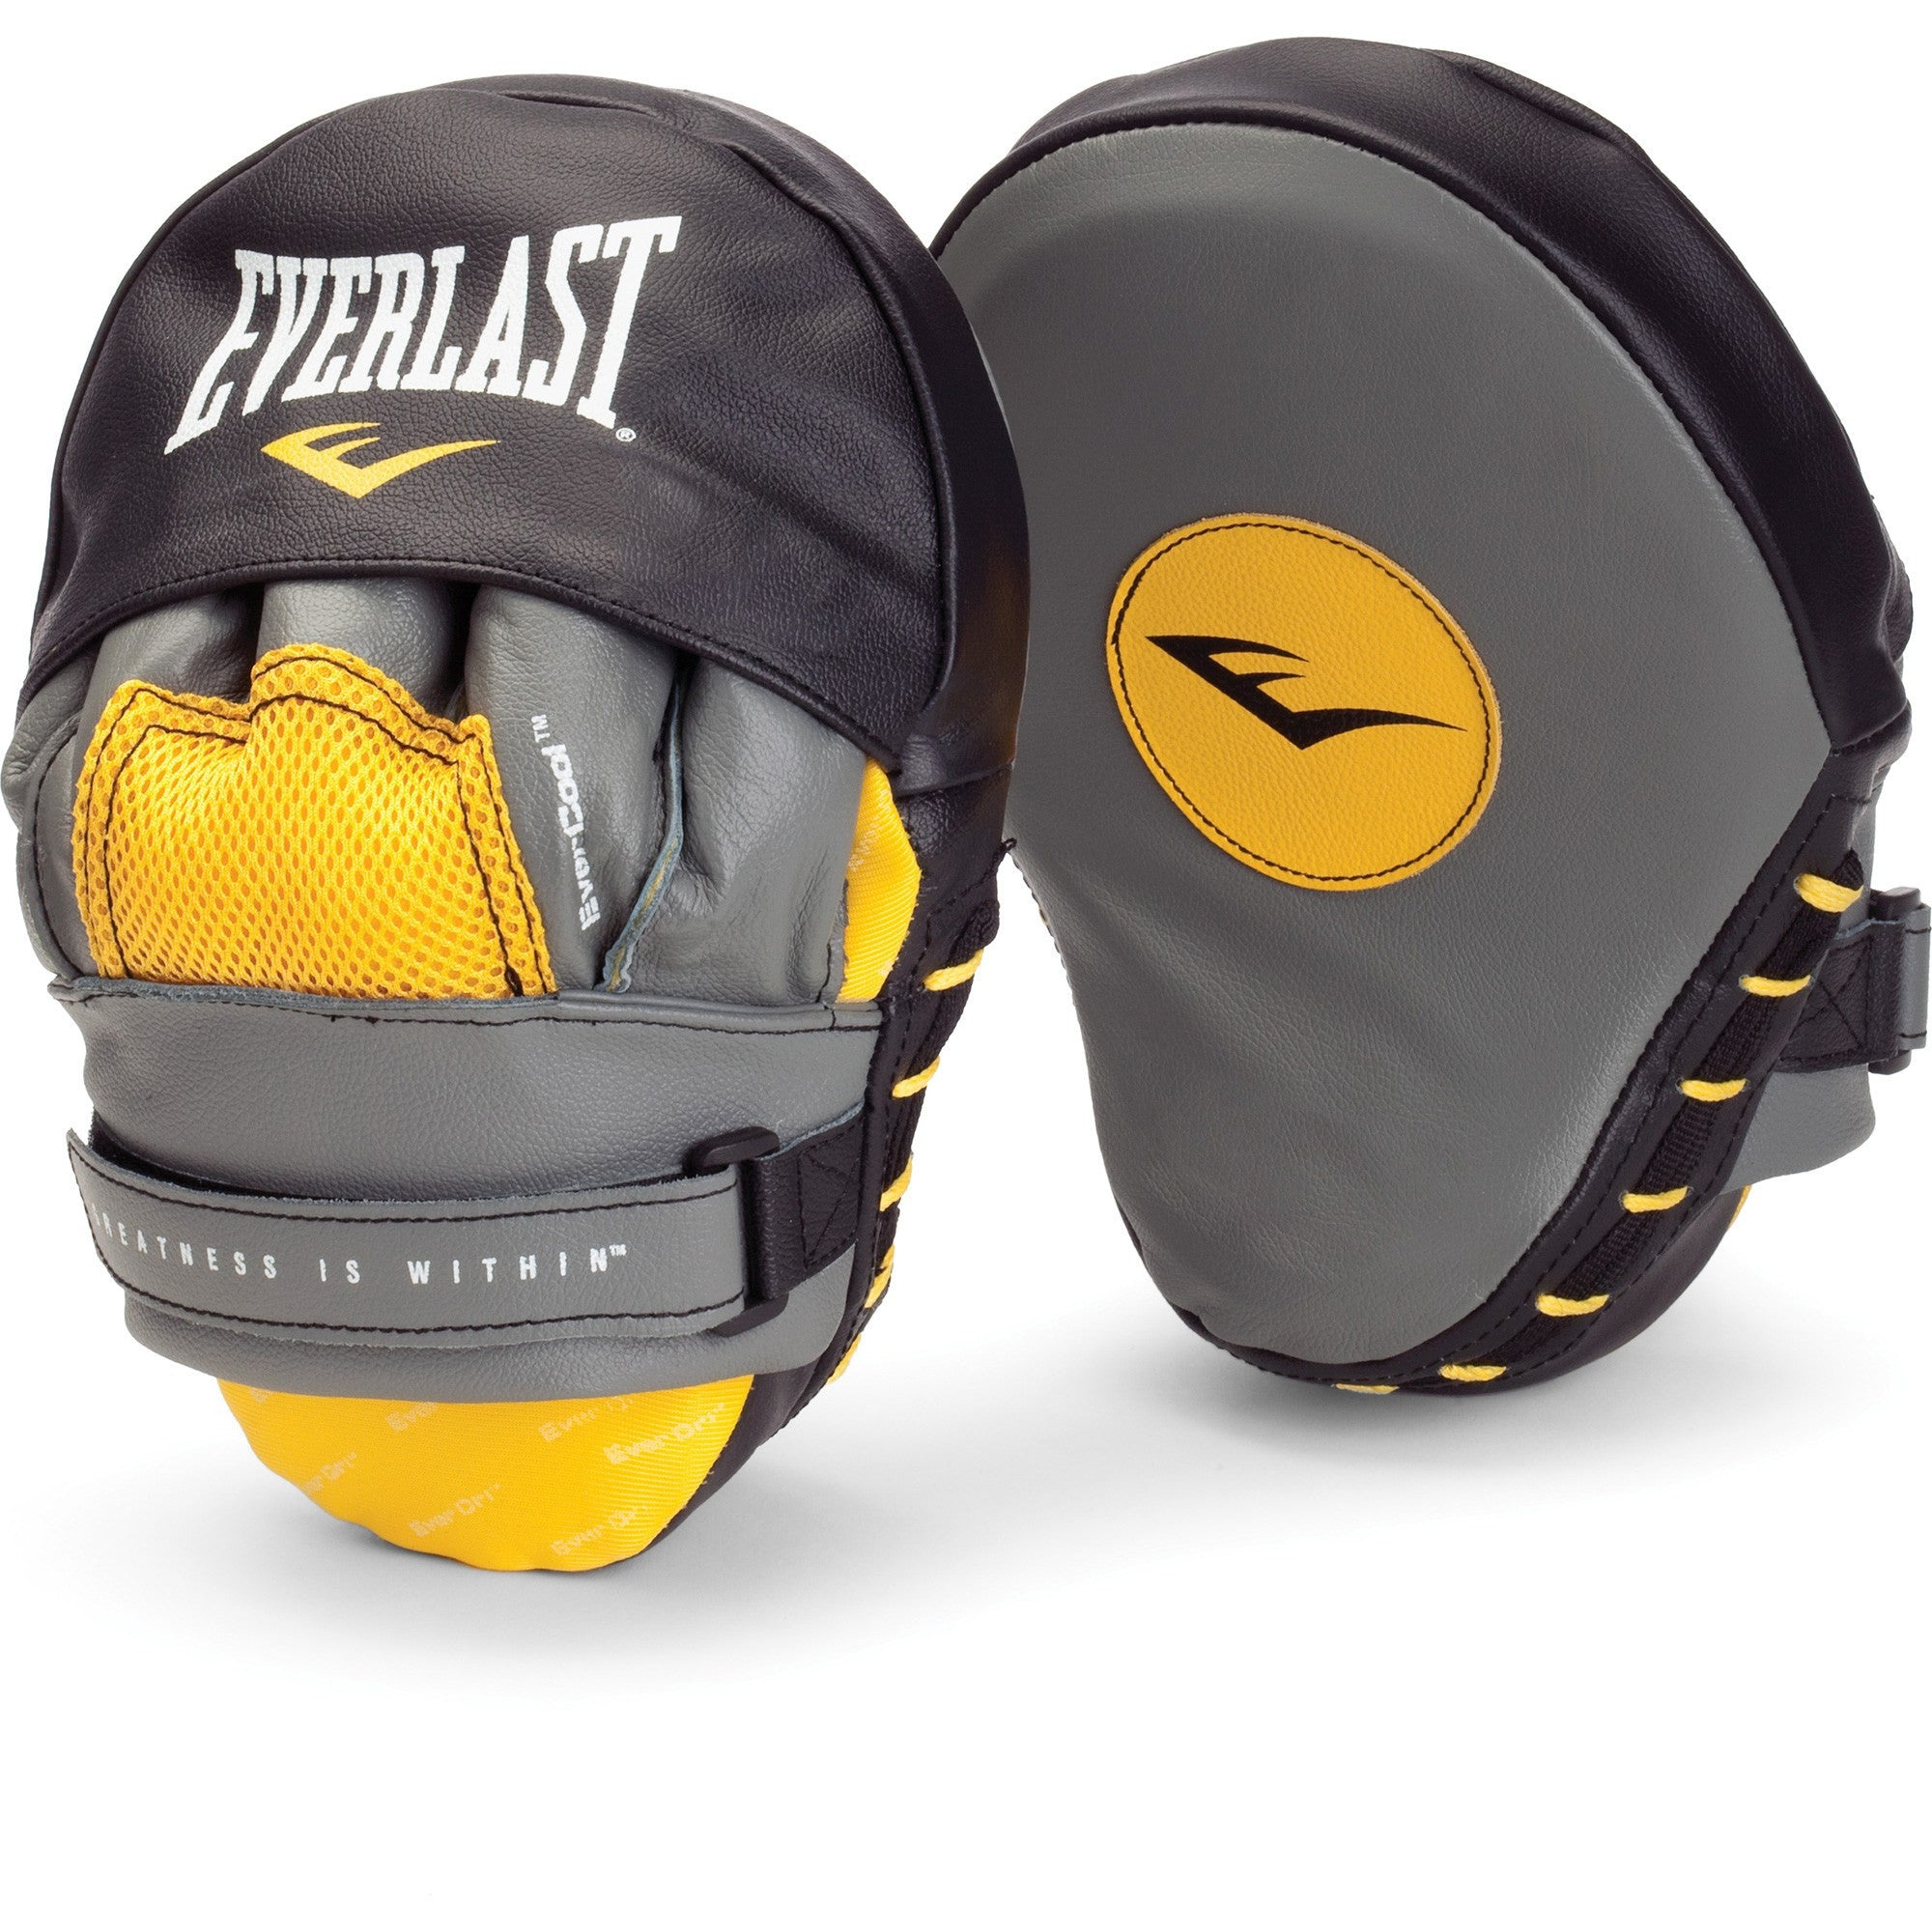 Everlast Mantis Mitts by Everlast Canada